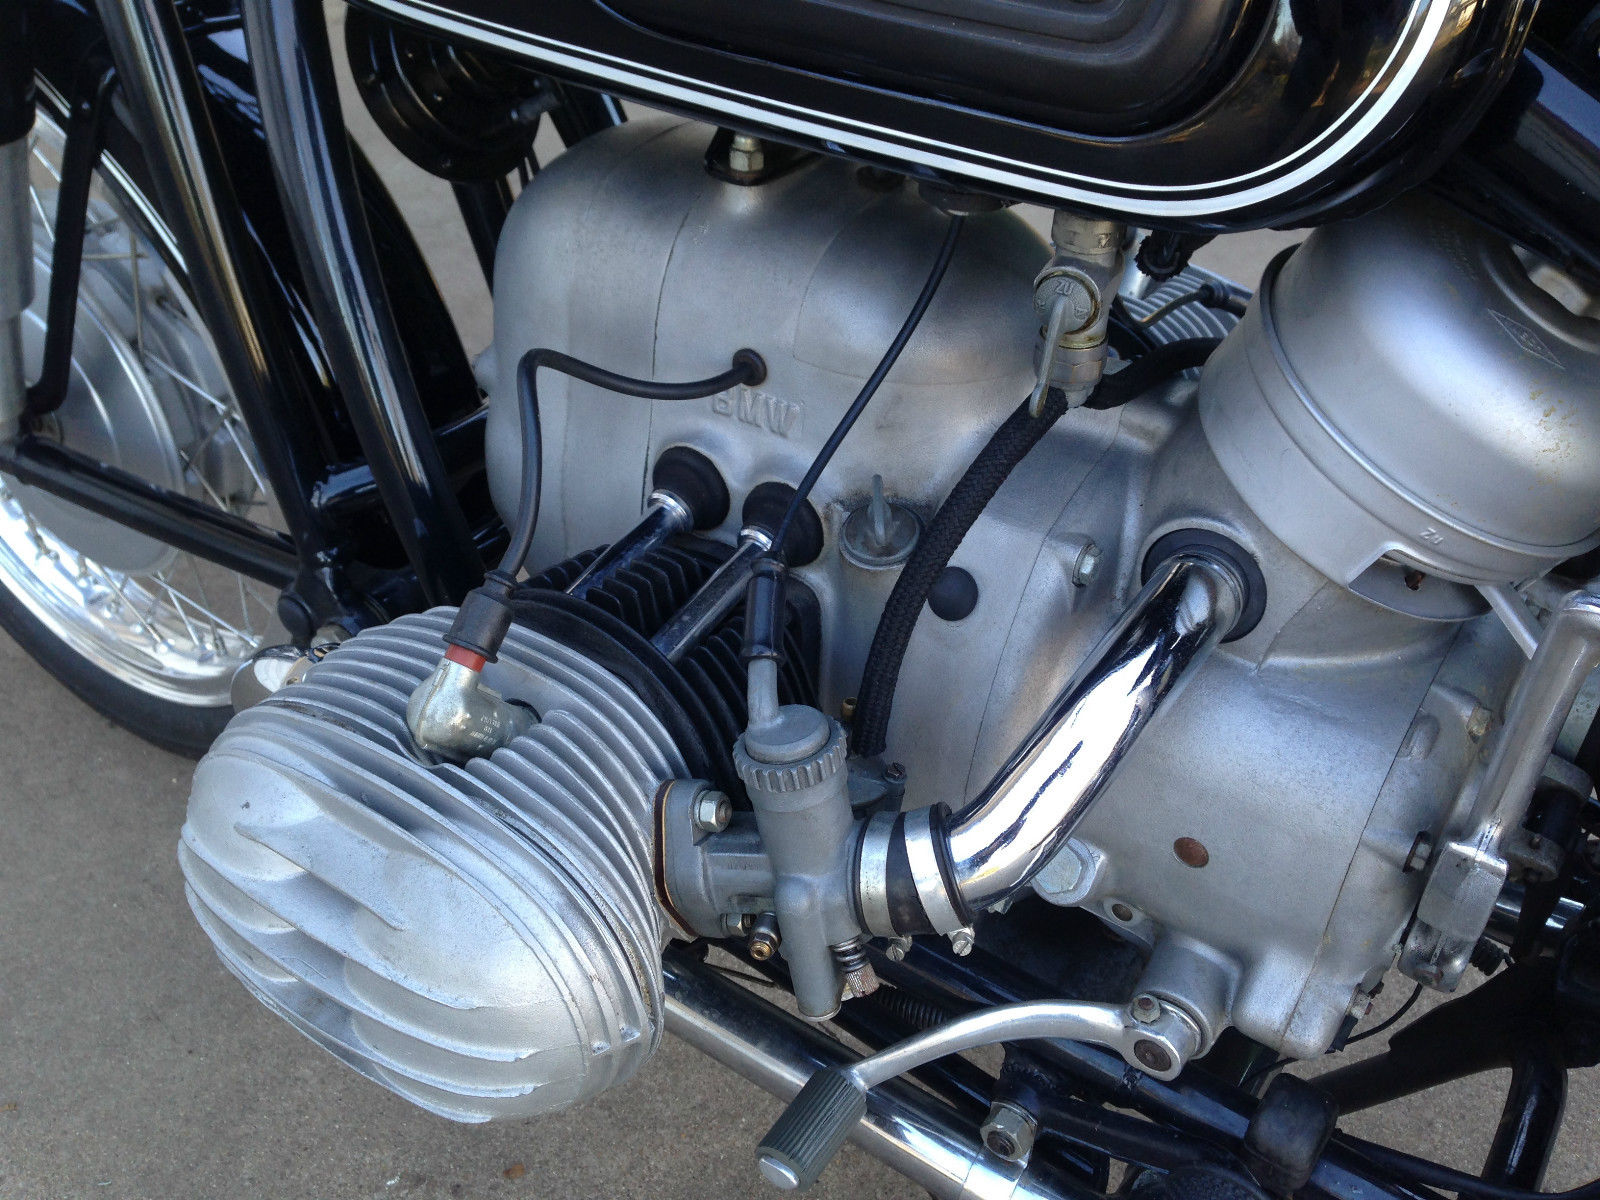 BMW R60/2 - 1967 - Bing Carburettor, Inlet Tube, Cylinder Head and Valve Cover.